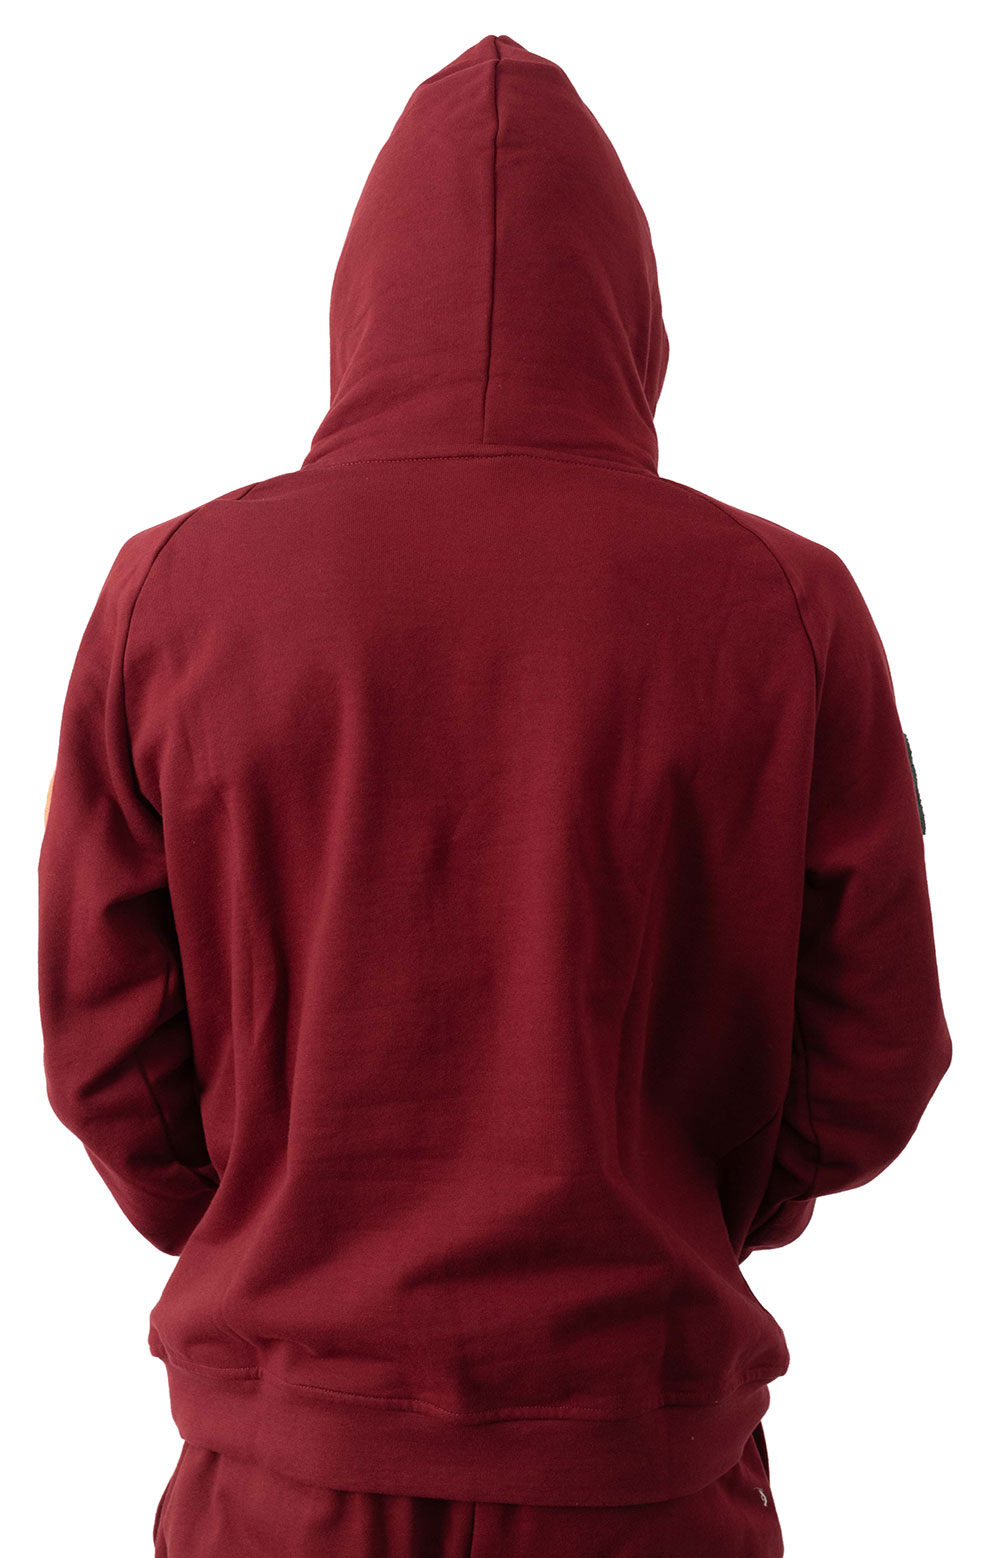 Authentic Katio Pullover Hoodie - Red 3